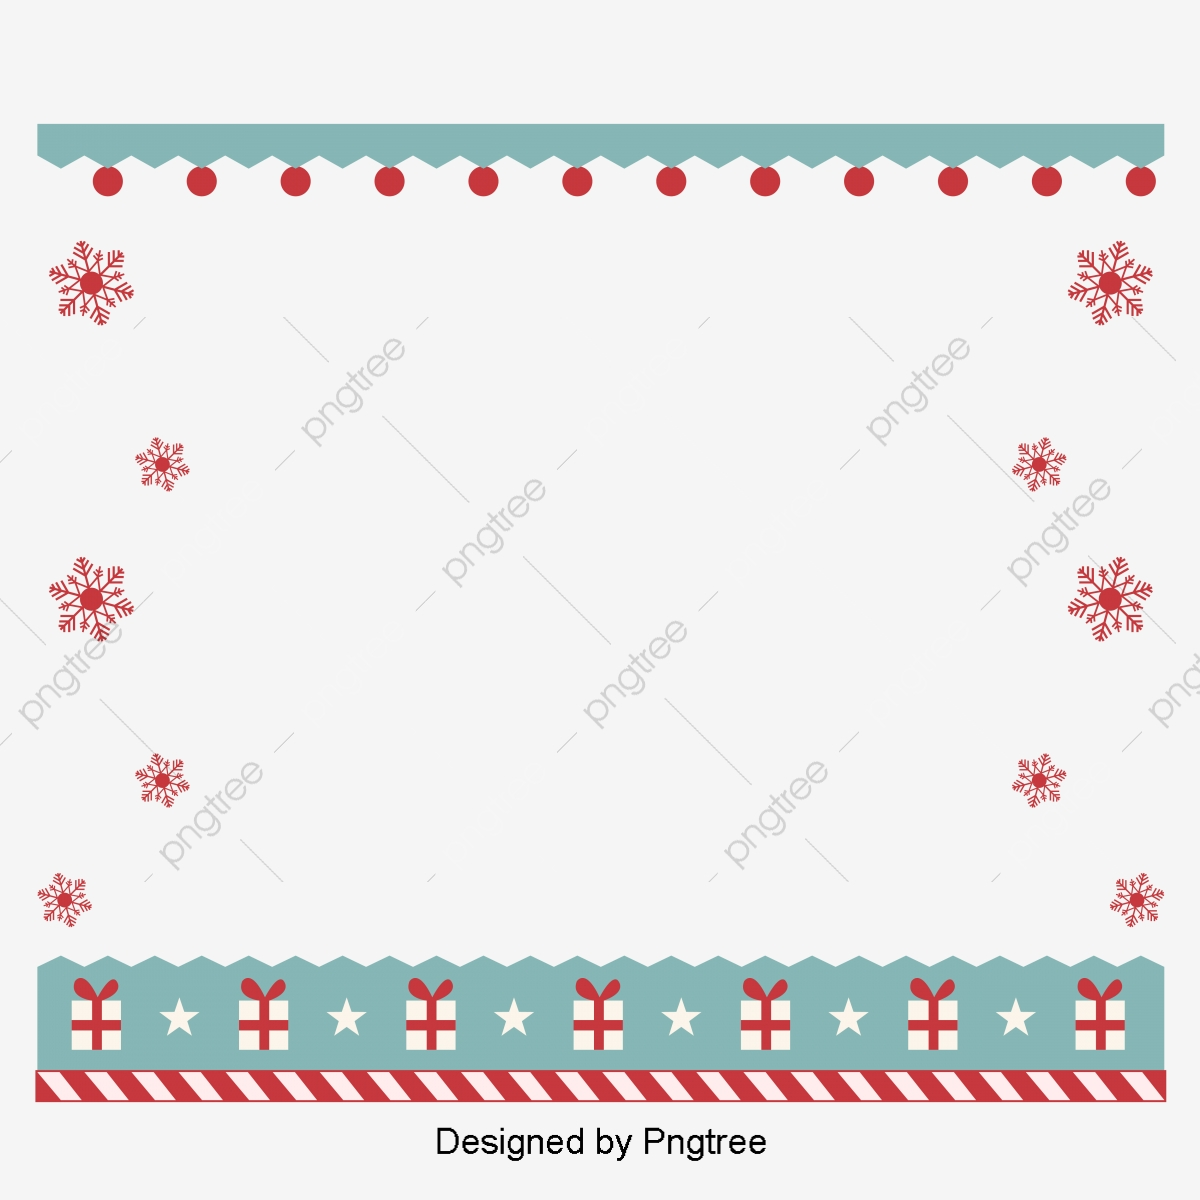 Christmas Border Design Png.Snow Lace Gift Christmas Border Design Christmas Elements